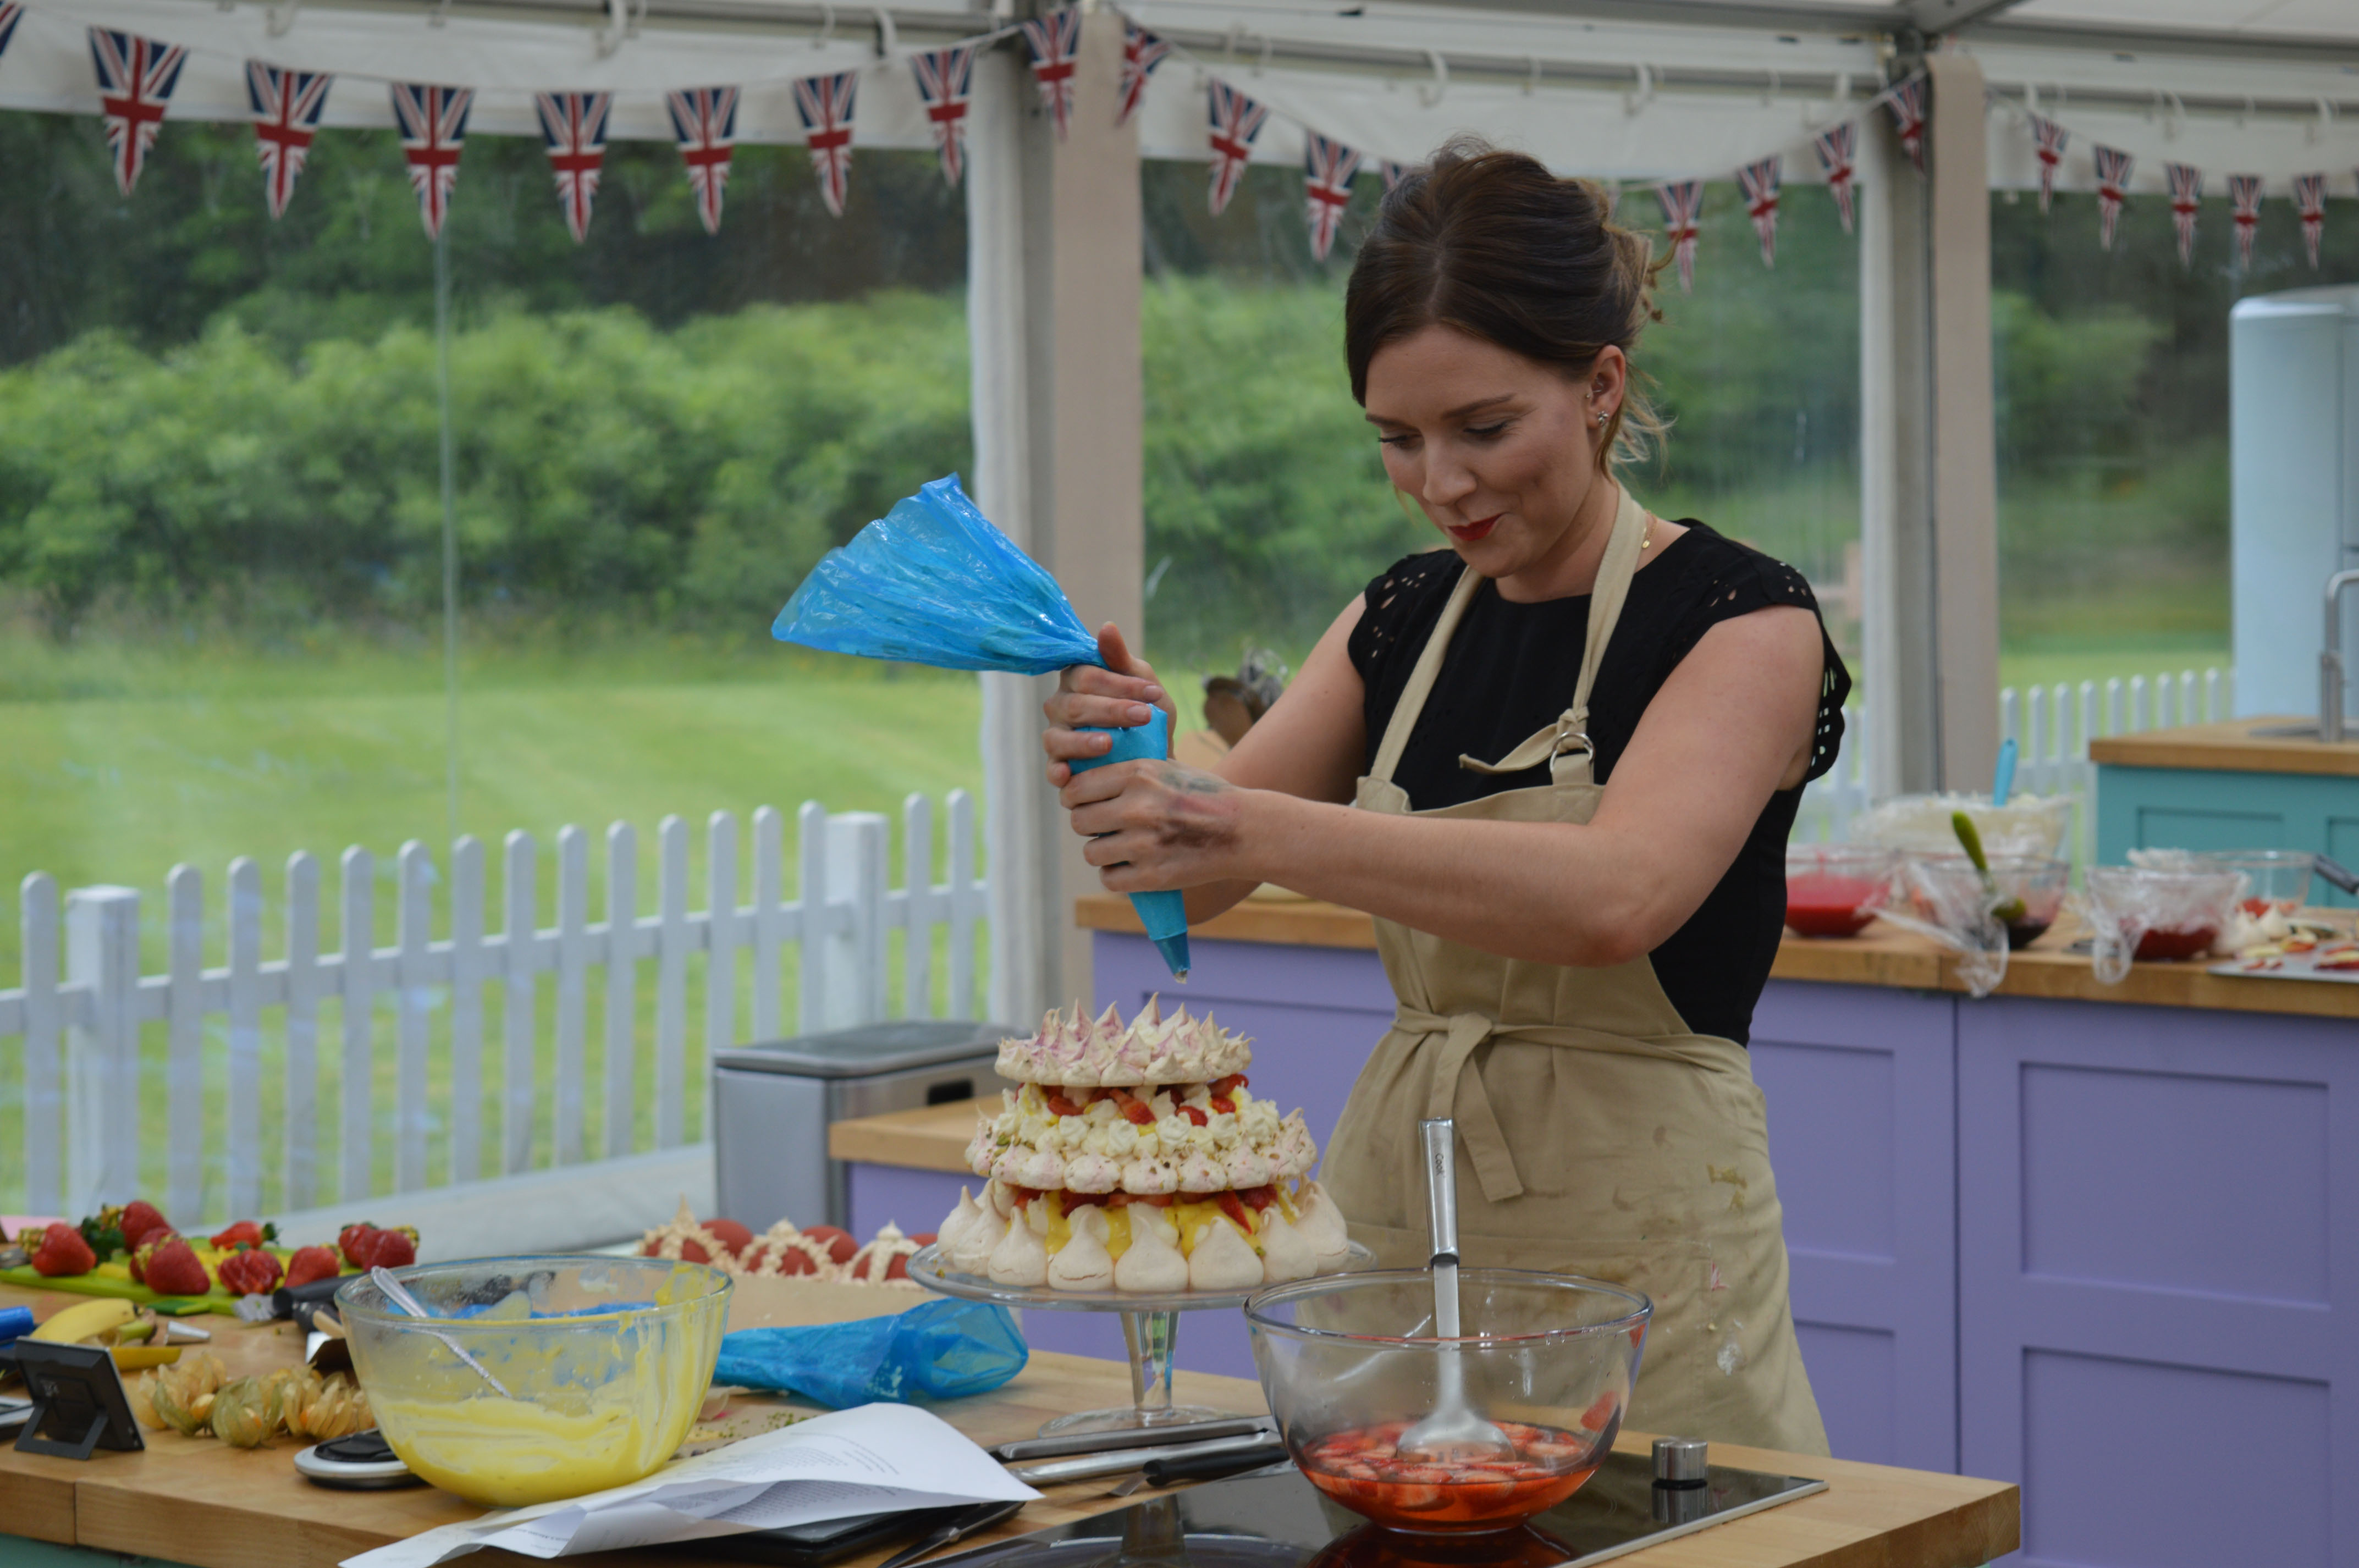 Last night, after a gruelling ten-week competition, the seventh season of the Great British Bake Off was won by Candice Brown (pictured), a 31-year-old phys. ed. teacher from Bedfordshire